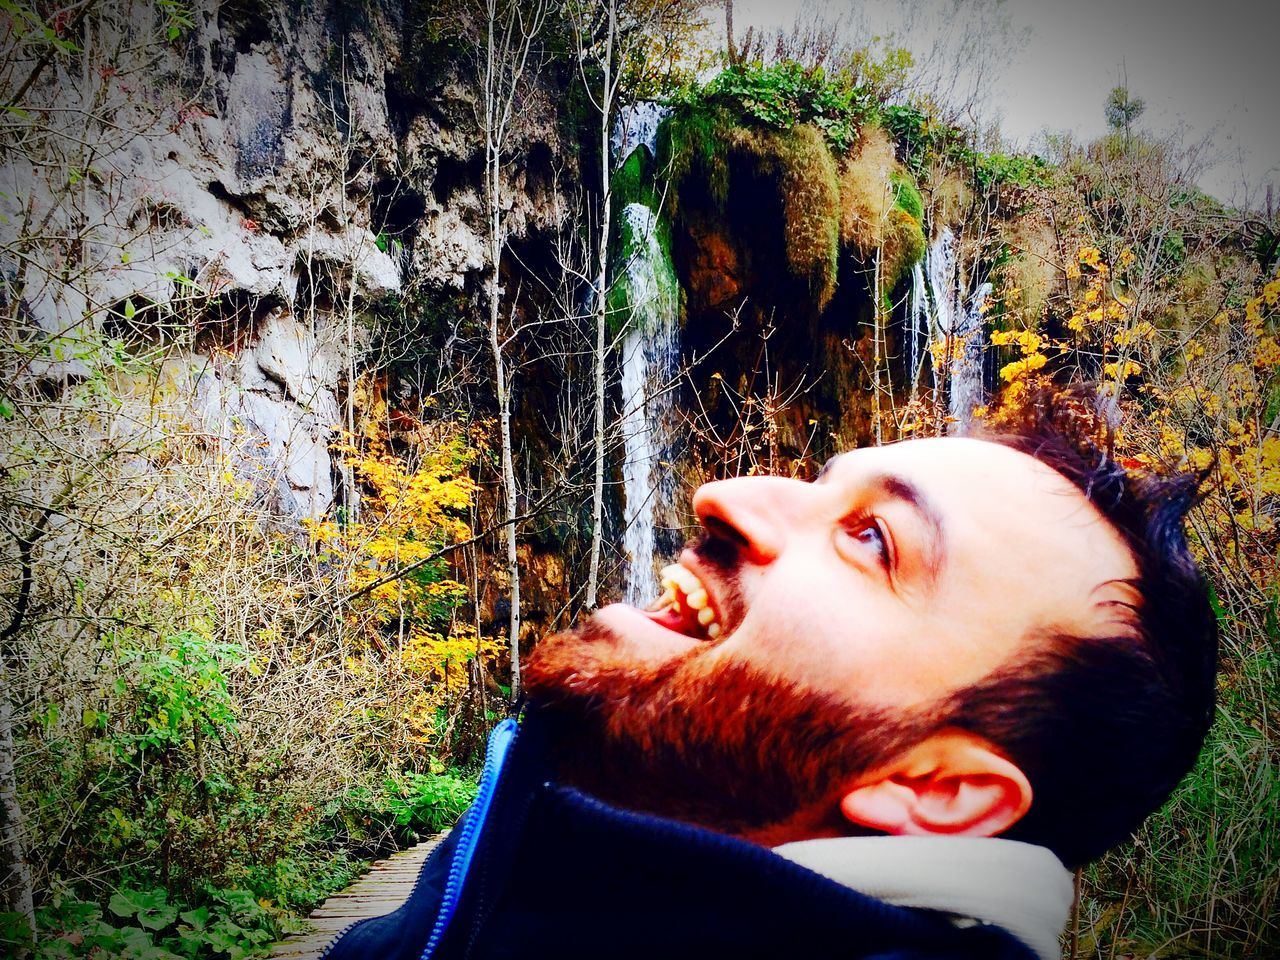 Plitvice national park One Person Beard Lifestyles Real People Headshot Leisure Activity Young Adult Day Nature Outdoors Men One Man Only Close-up Adult People Drinking Waterfall Fun Plitvice National Park Croatia Croatia ❤